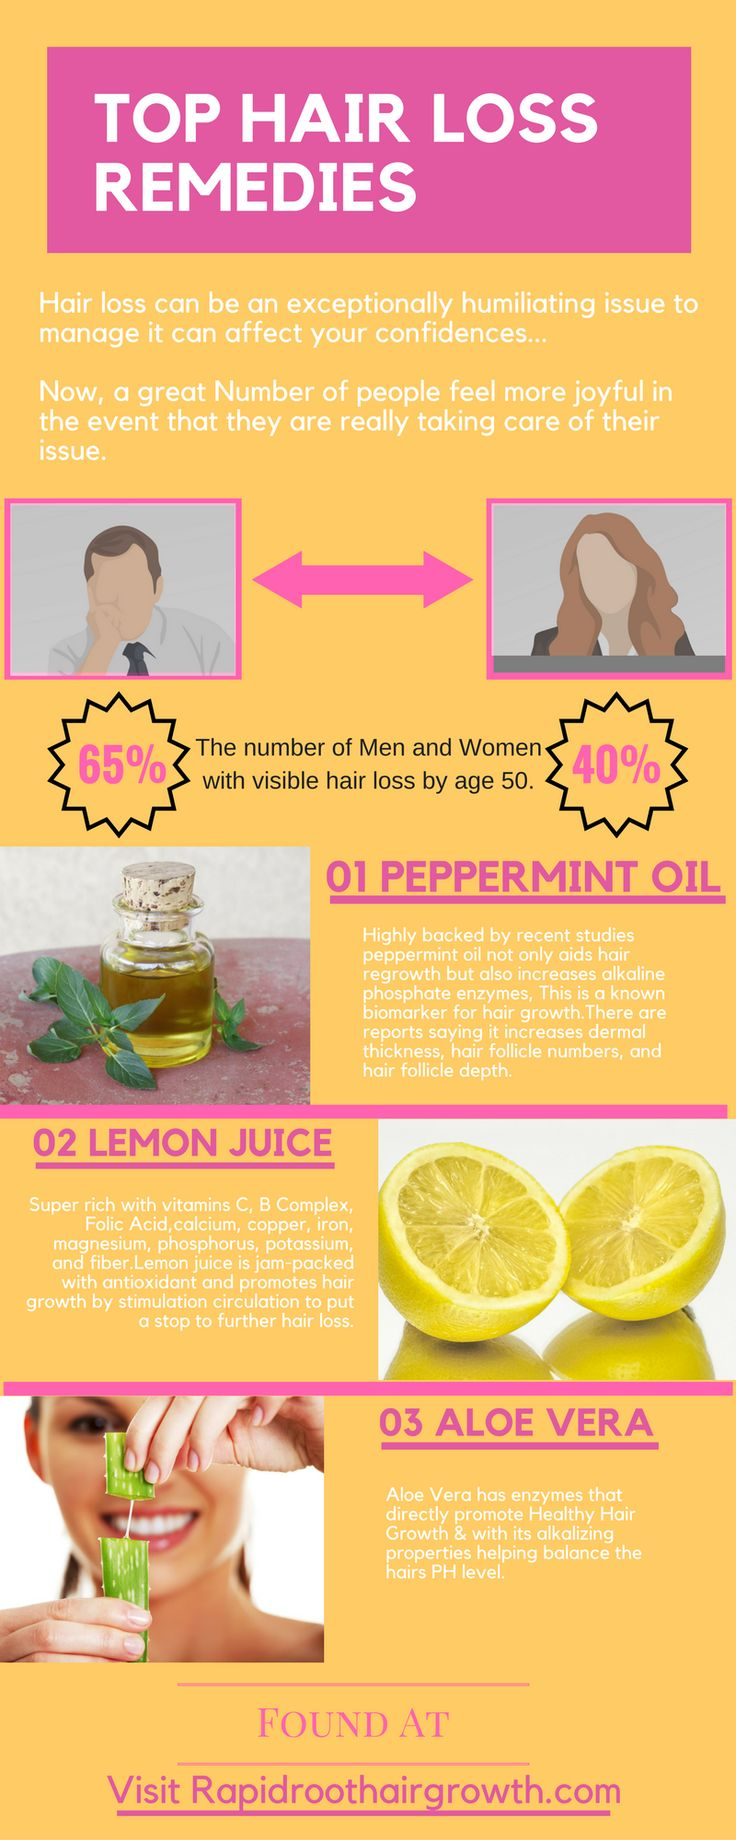 Hair loss remedies- My top three hair loss treatments best for promoting hair regrowth.